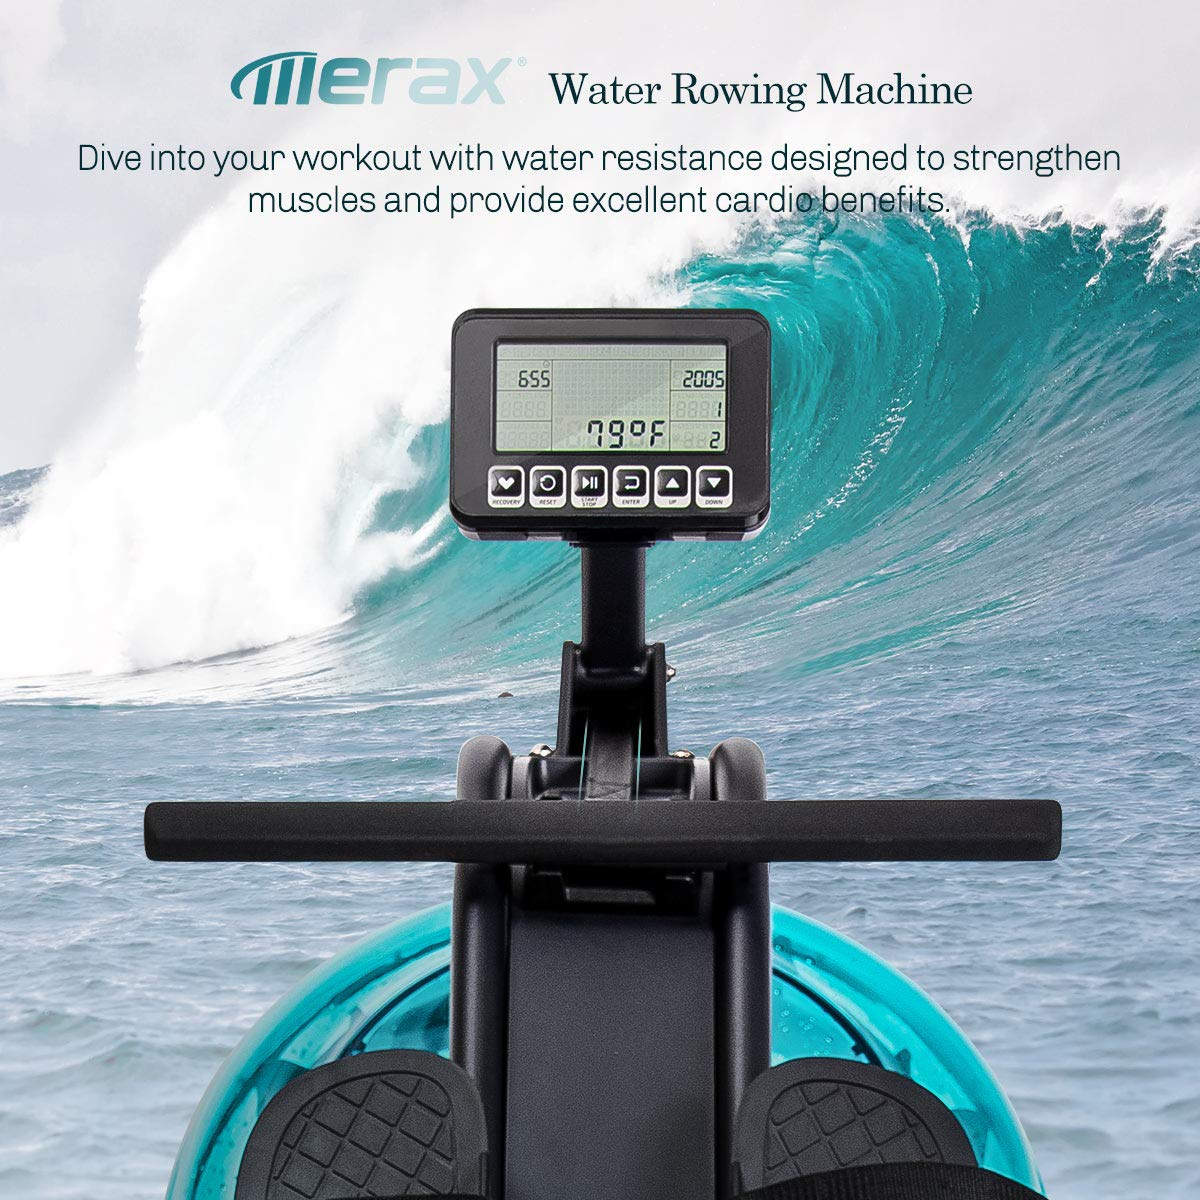 Merax Water Rowing Machine - Fitness Indoor Water Rower with LCD Monitor Home Gym Equipment (Black) by Merax (Image #2)